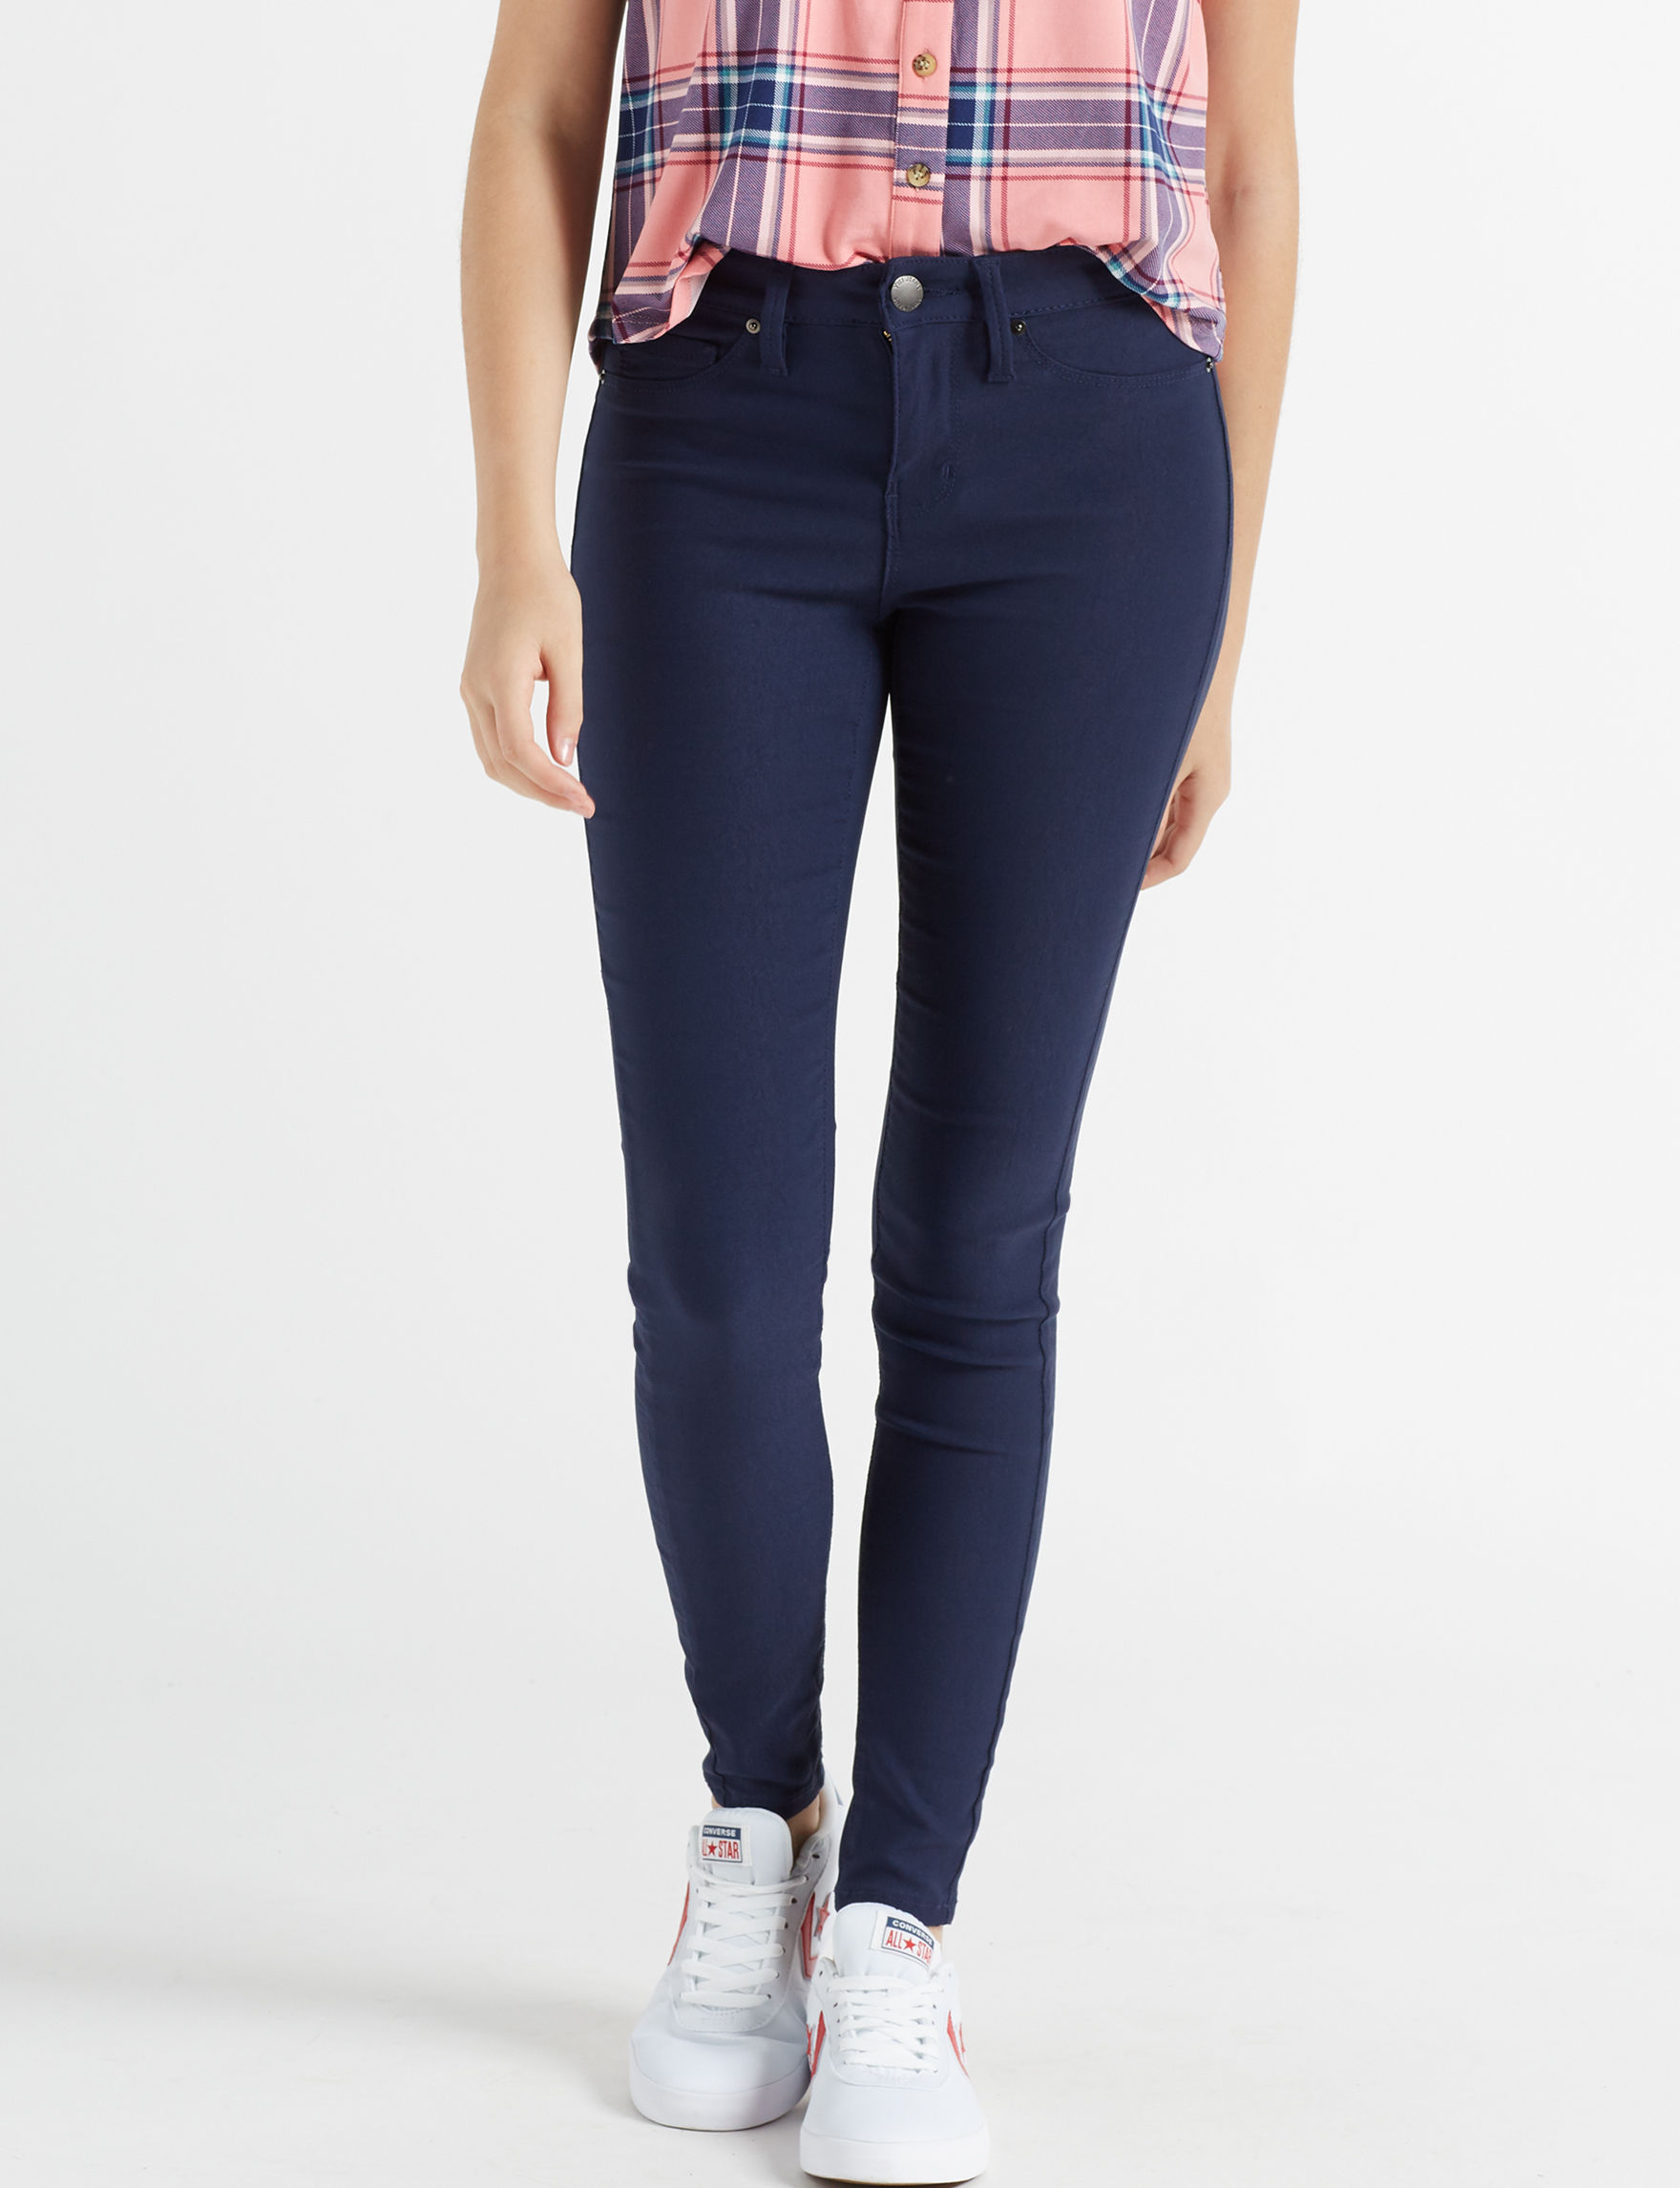 Wishful Park Navy Skinny Stretch